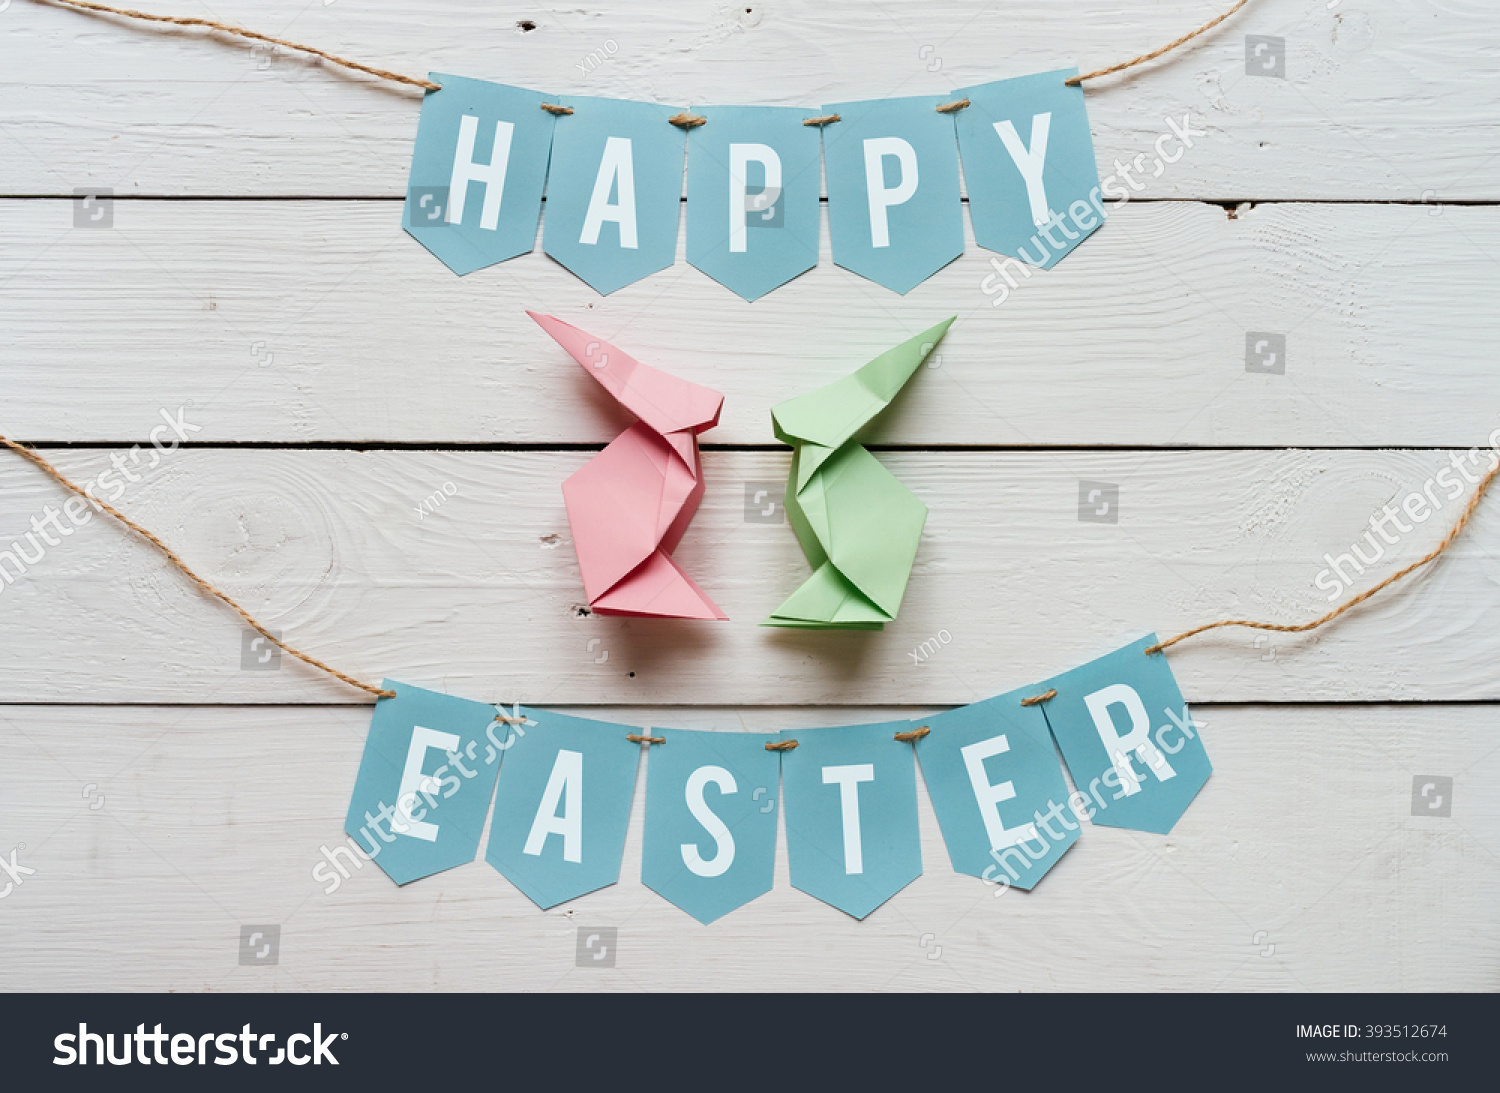 happy easter banner lettering holiday postcard template stock happy easter banner lettering holiday postcard template